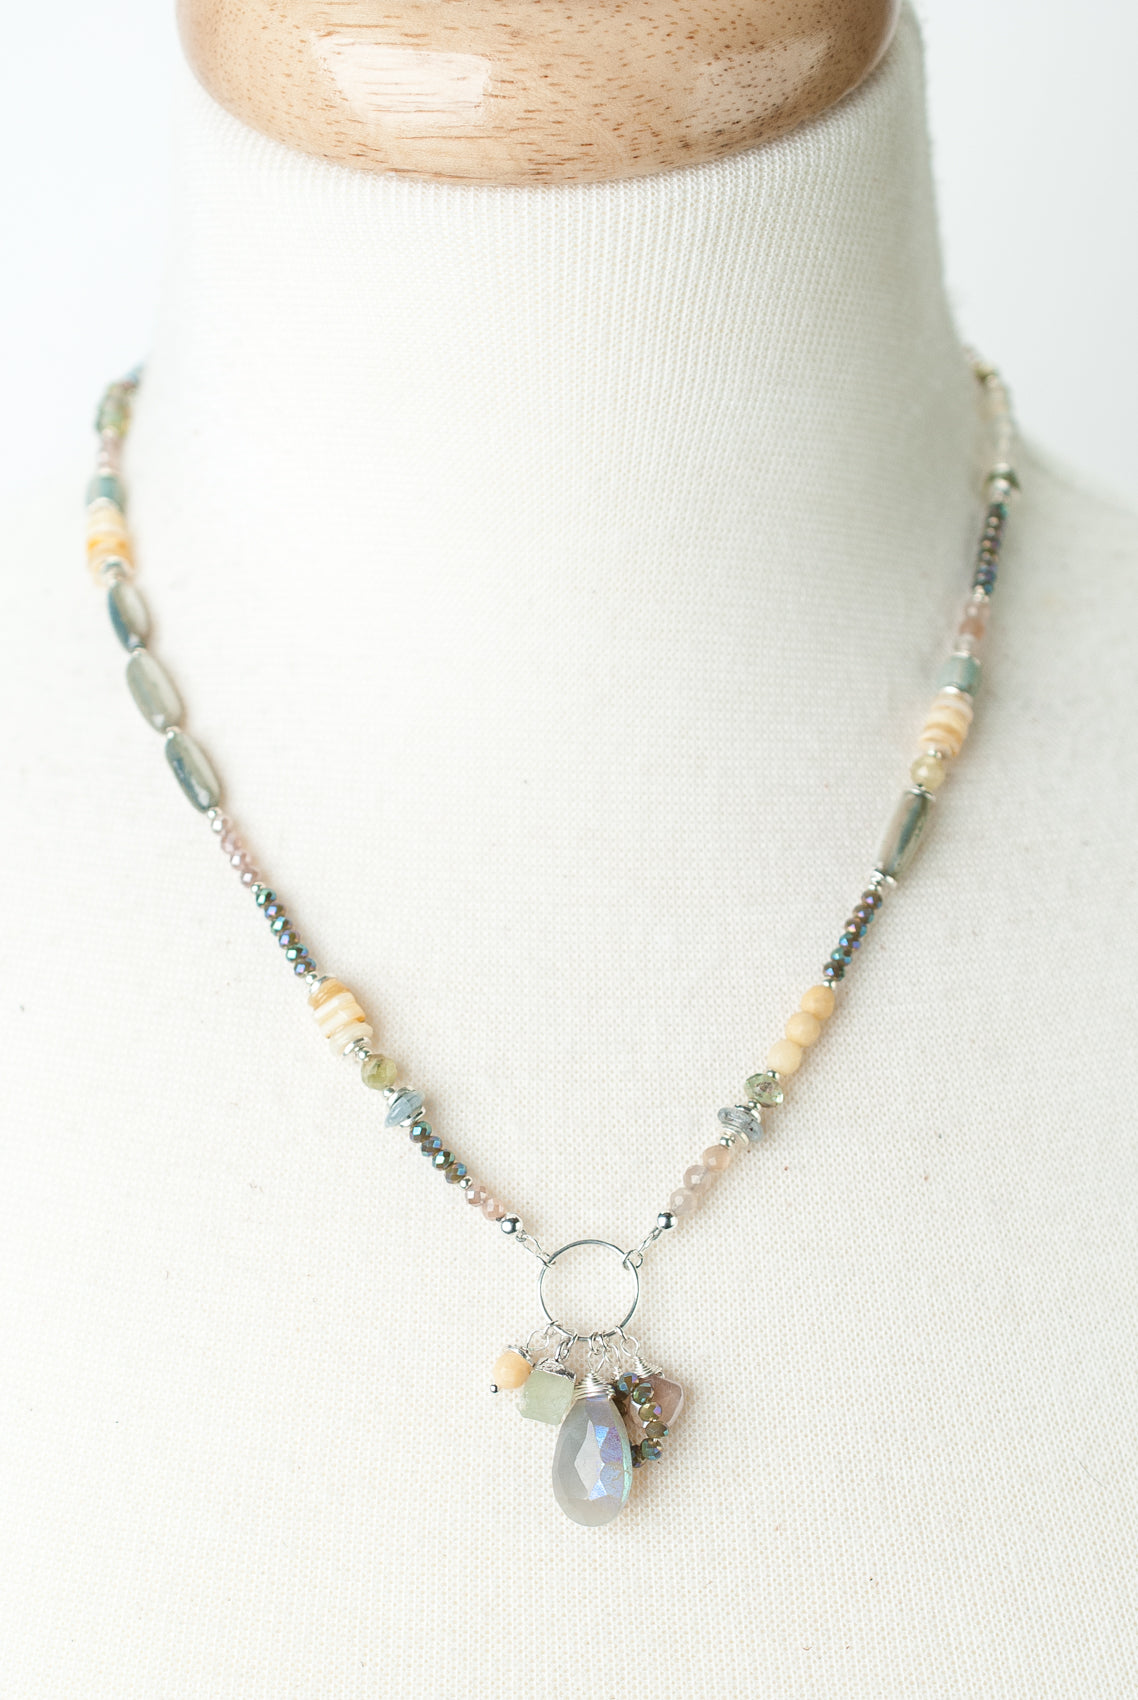 "Vision 17-19"" Moonstone, Shell, Crystal Collage Cluster Necklace"